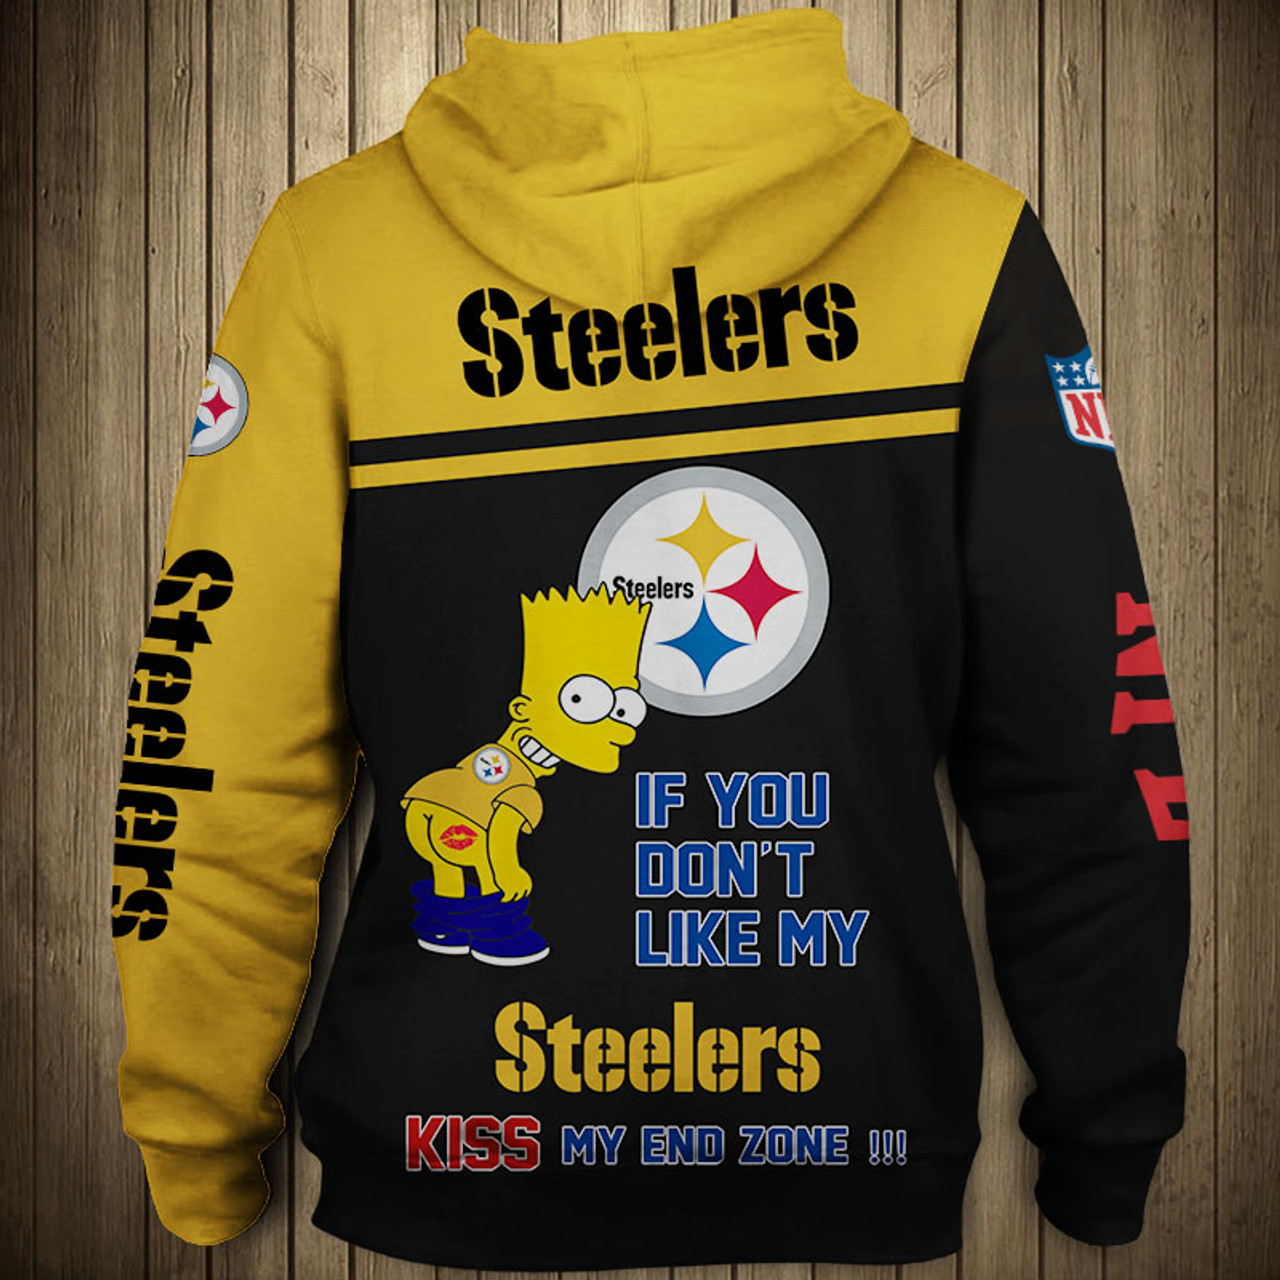 new product a1d9a 8863d **(OFFICIAL-N.F.L.PITTSBURGH-STEELERS-PULLOVER-HOODIES/3D-CUSTOM-STEELERS-LOGOS  & OFFICIAL-STEELERS-TEAM-COLORS/CUSTOM-3D-GRAPHIC-PRINTED-DOUBLE-SIDED...